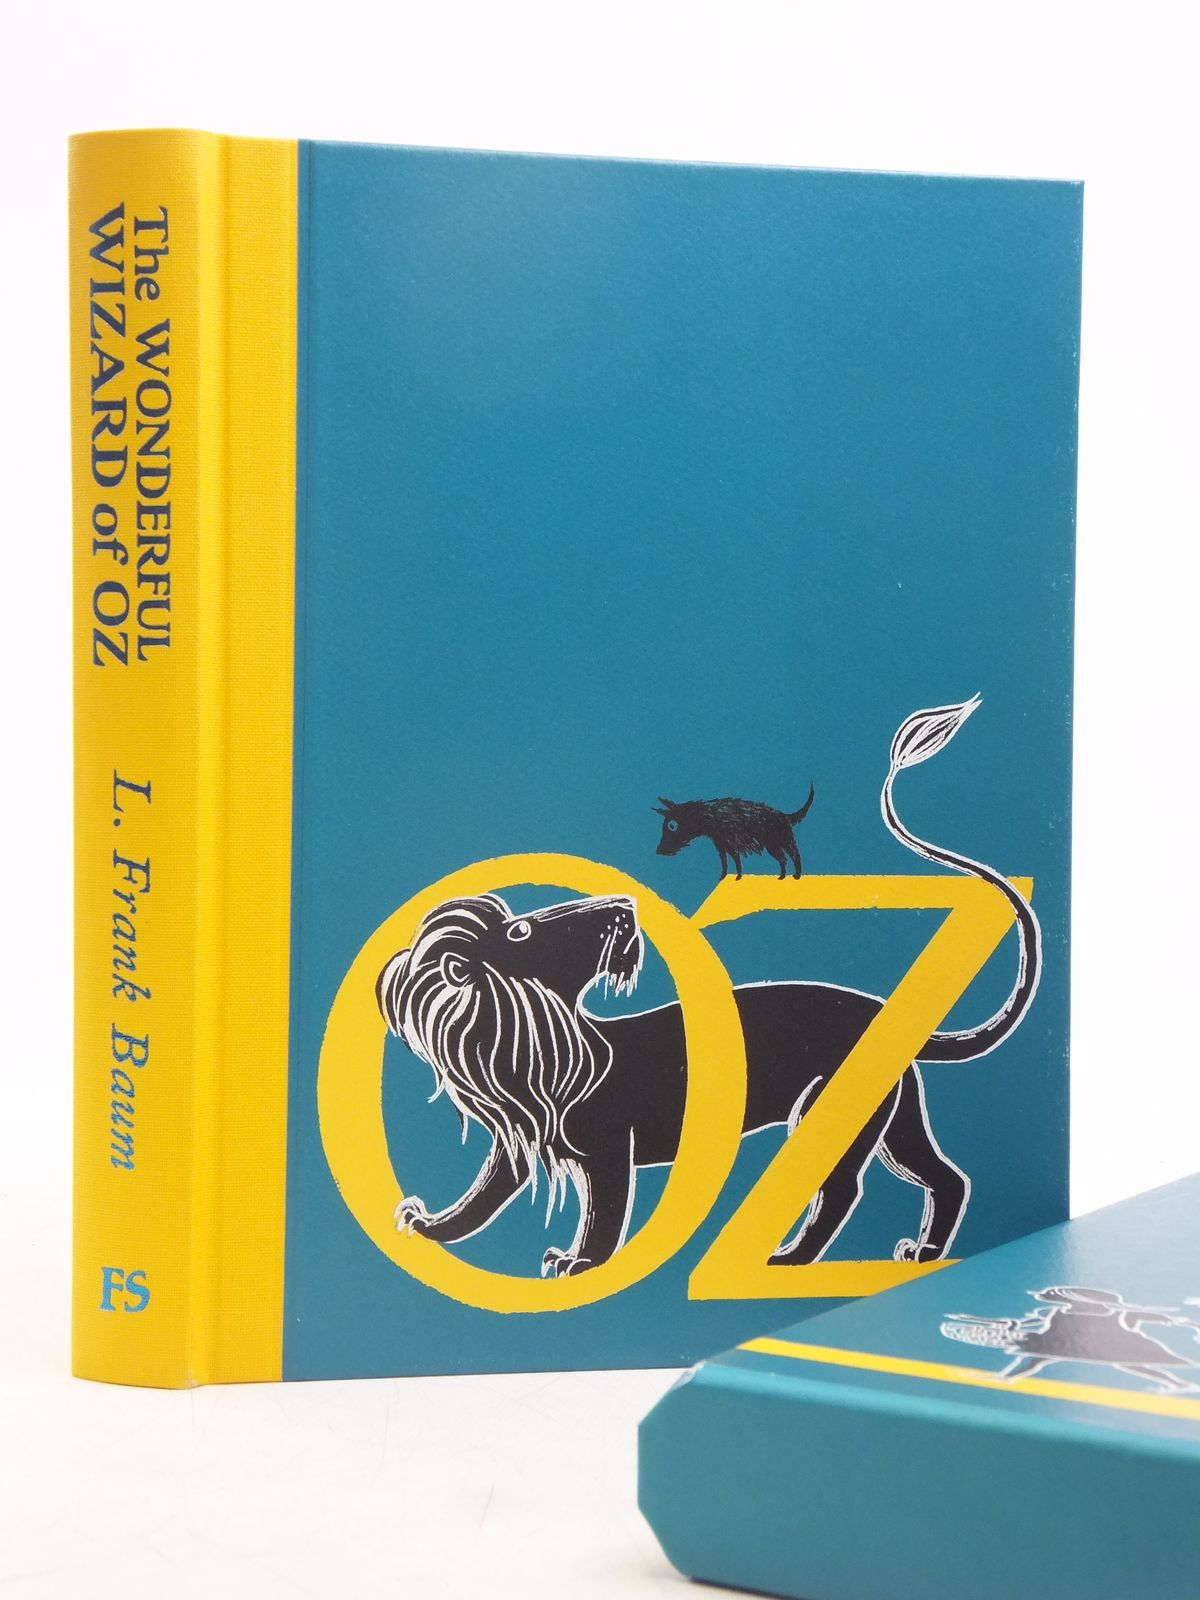 Photo of THE WONDERFUL WIZARD OF OZ written by Baum, L. Frank illustrated by Ogilvie, Sara published by Folio Society (STOCK CODE: 2119349)  for sale by Stella & Rose's Books